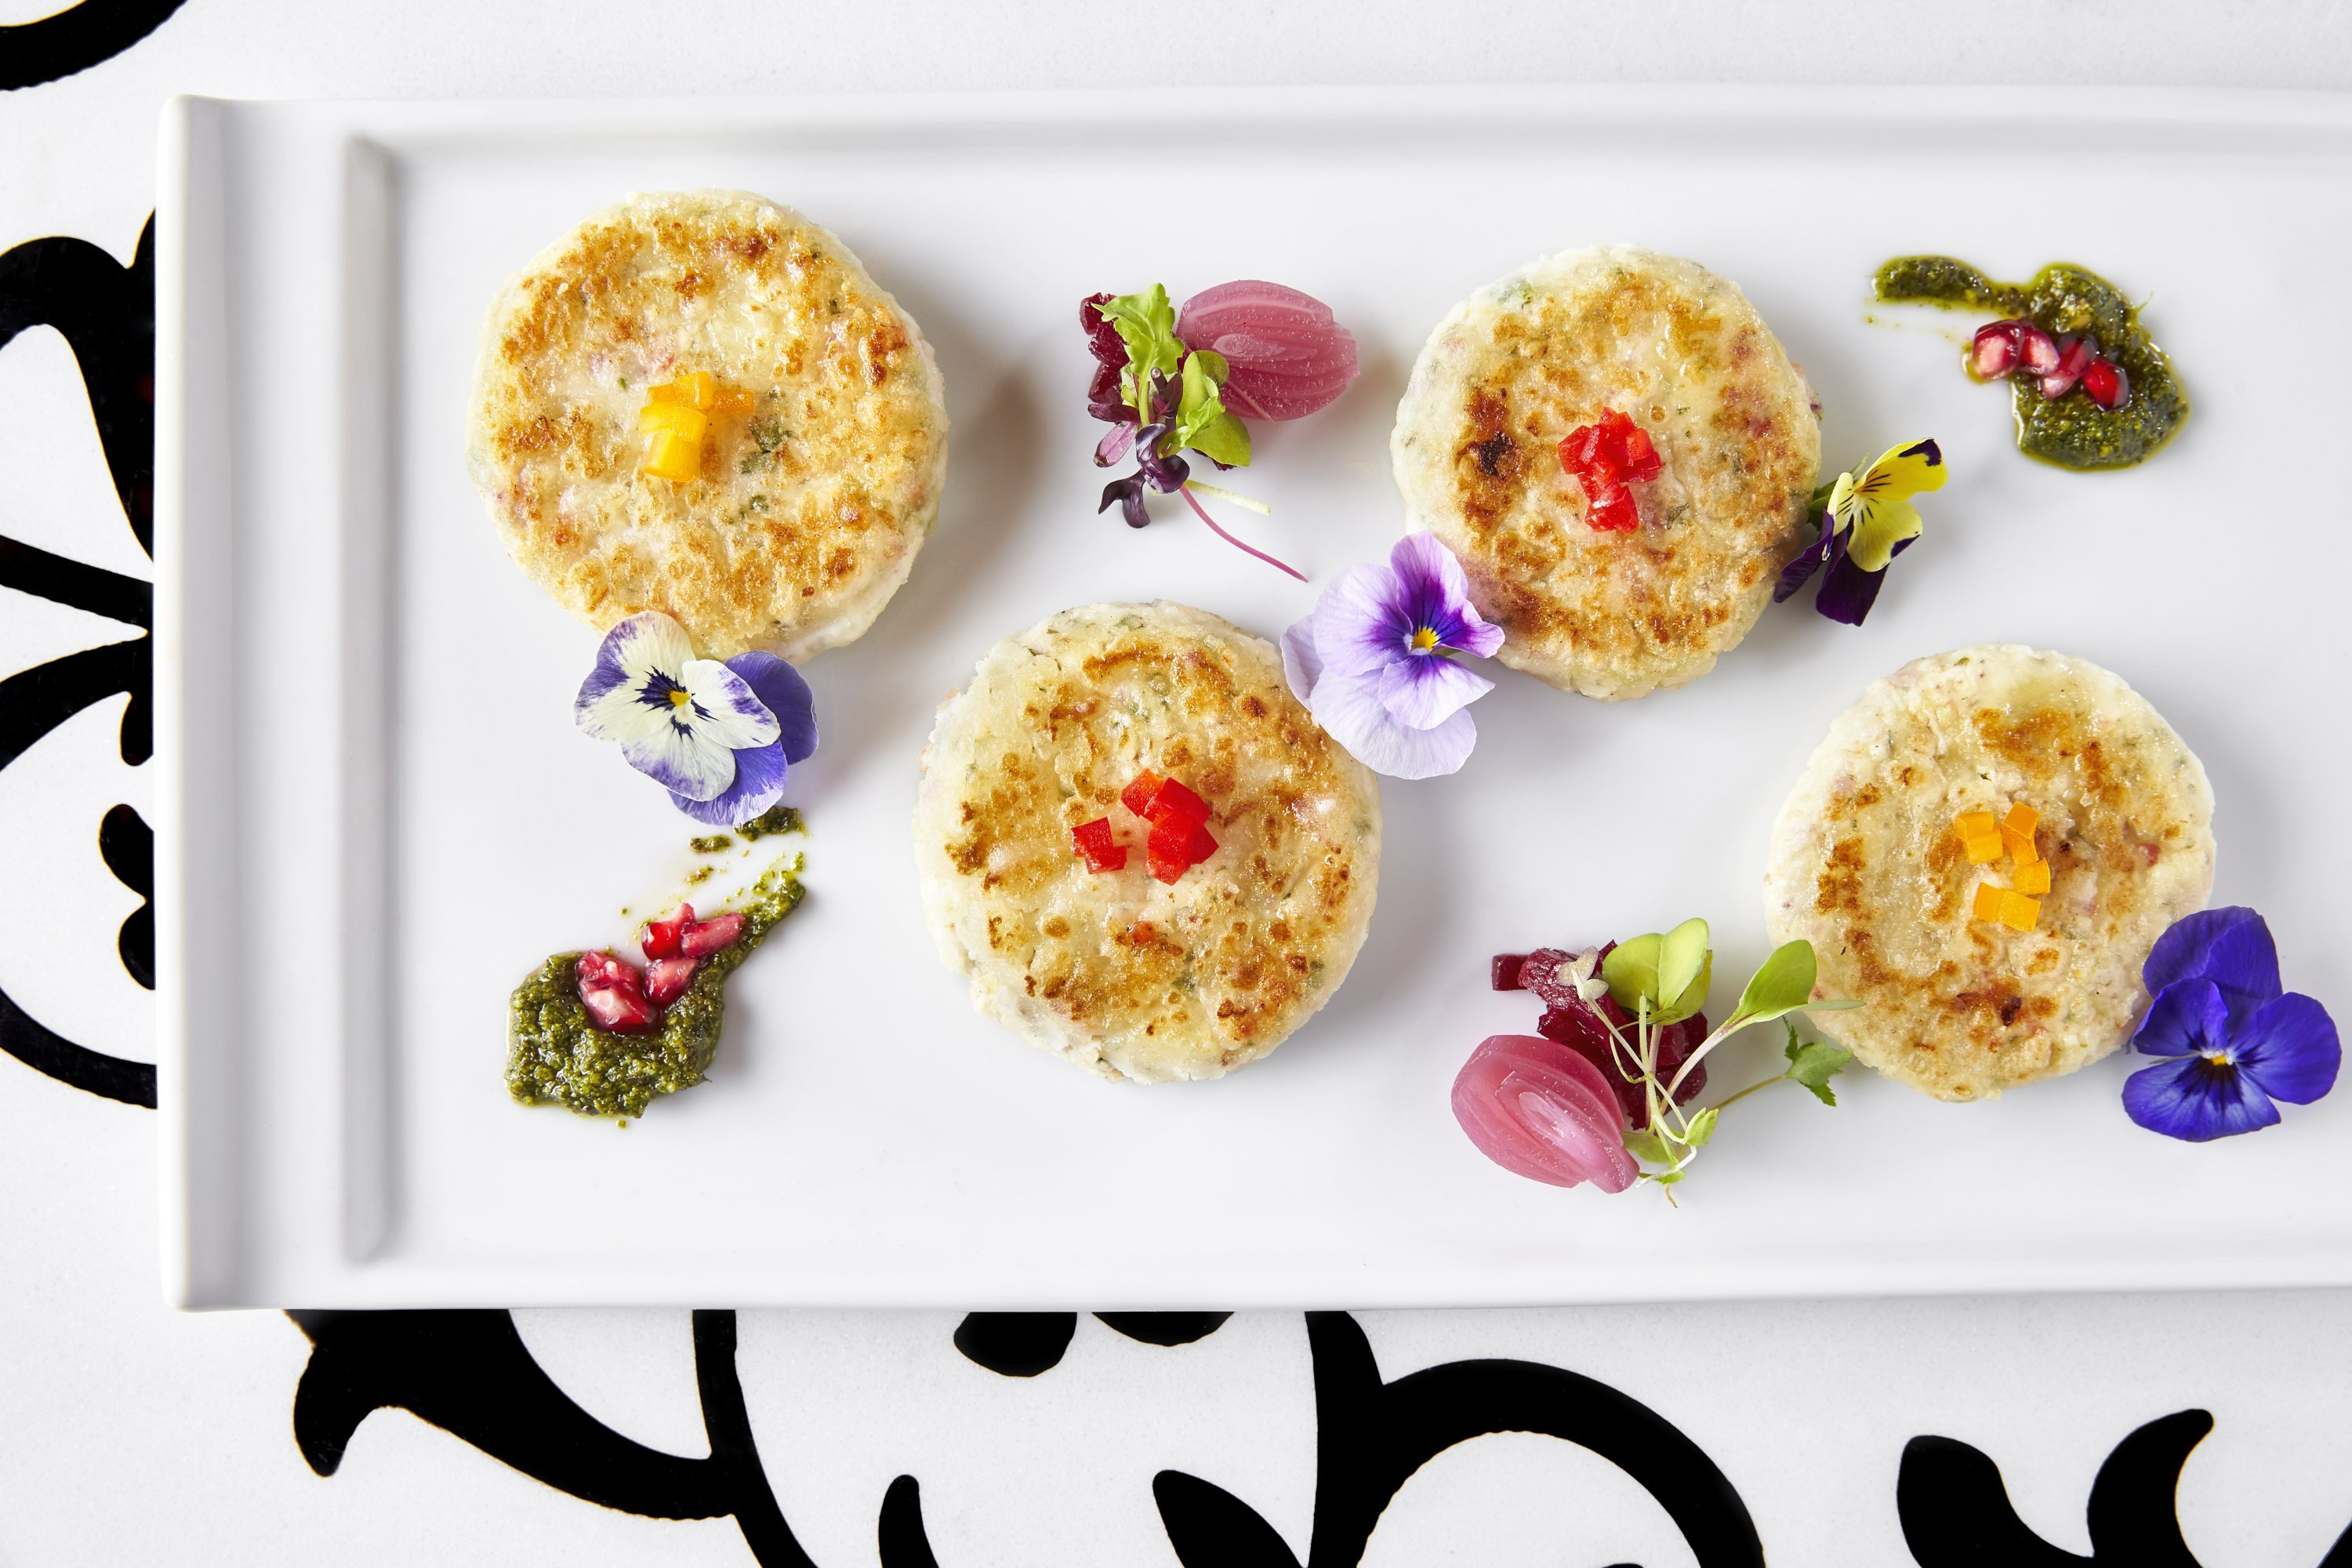 Pan fried Dahi Ke Kebab is a hot appetizer with mint and pomegranate dip. Photograph by Greg Powers.